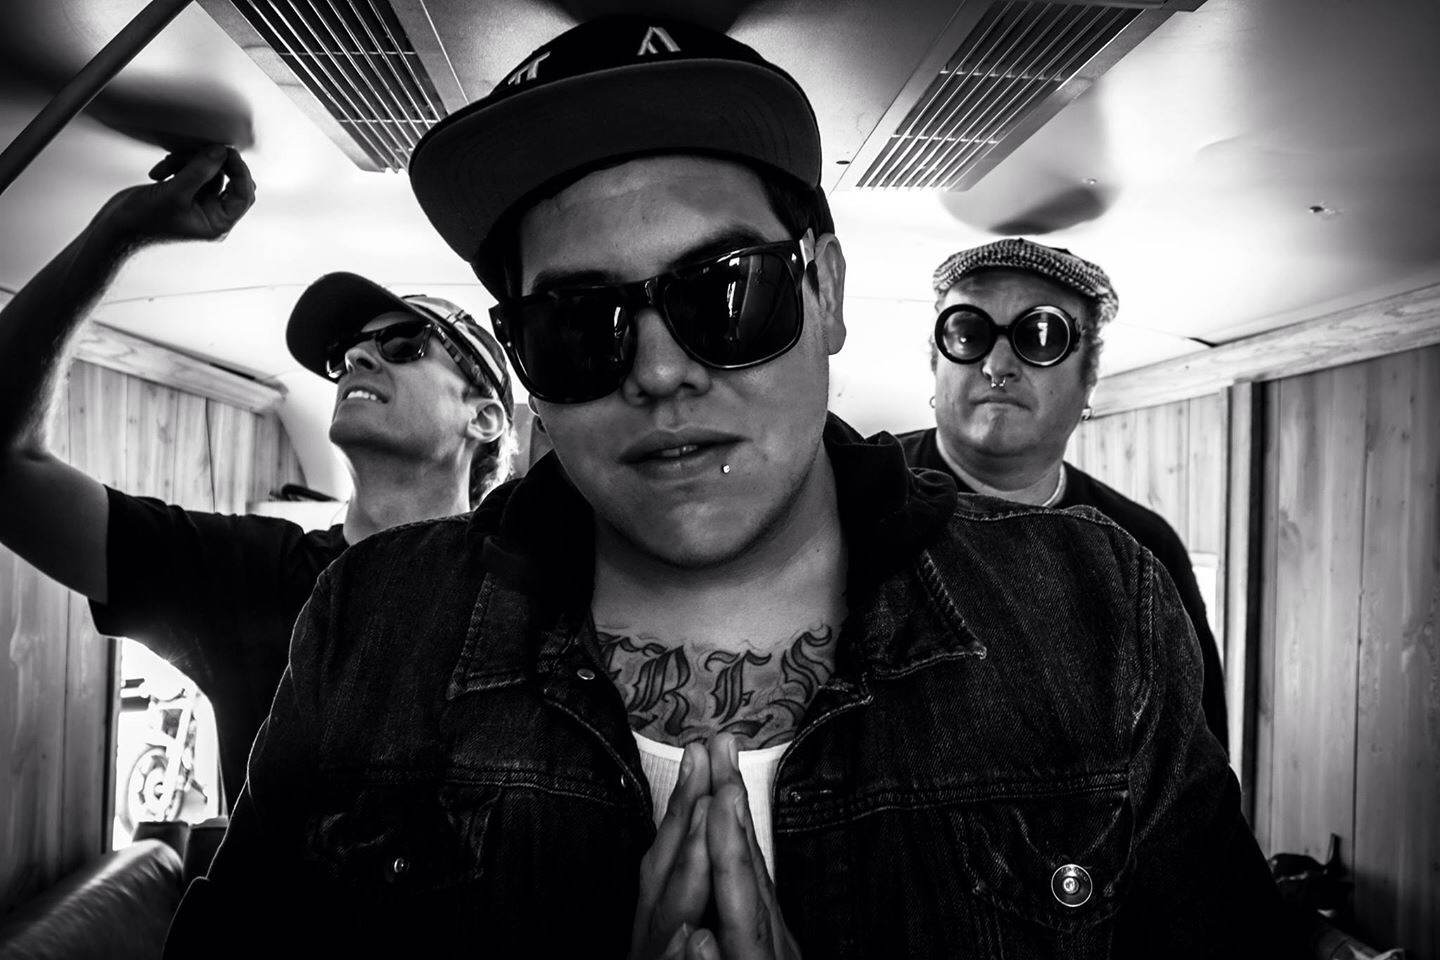 Sublime with Rome is one of two bands headlining the OZ Music Fest